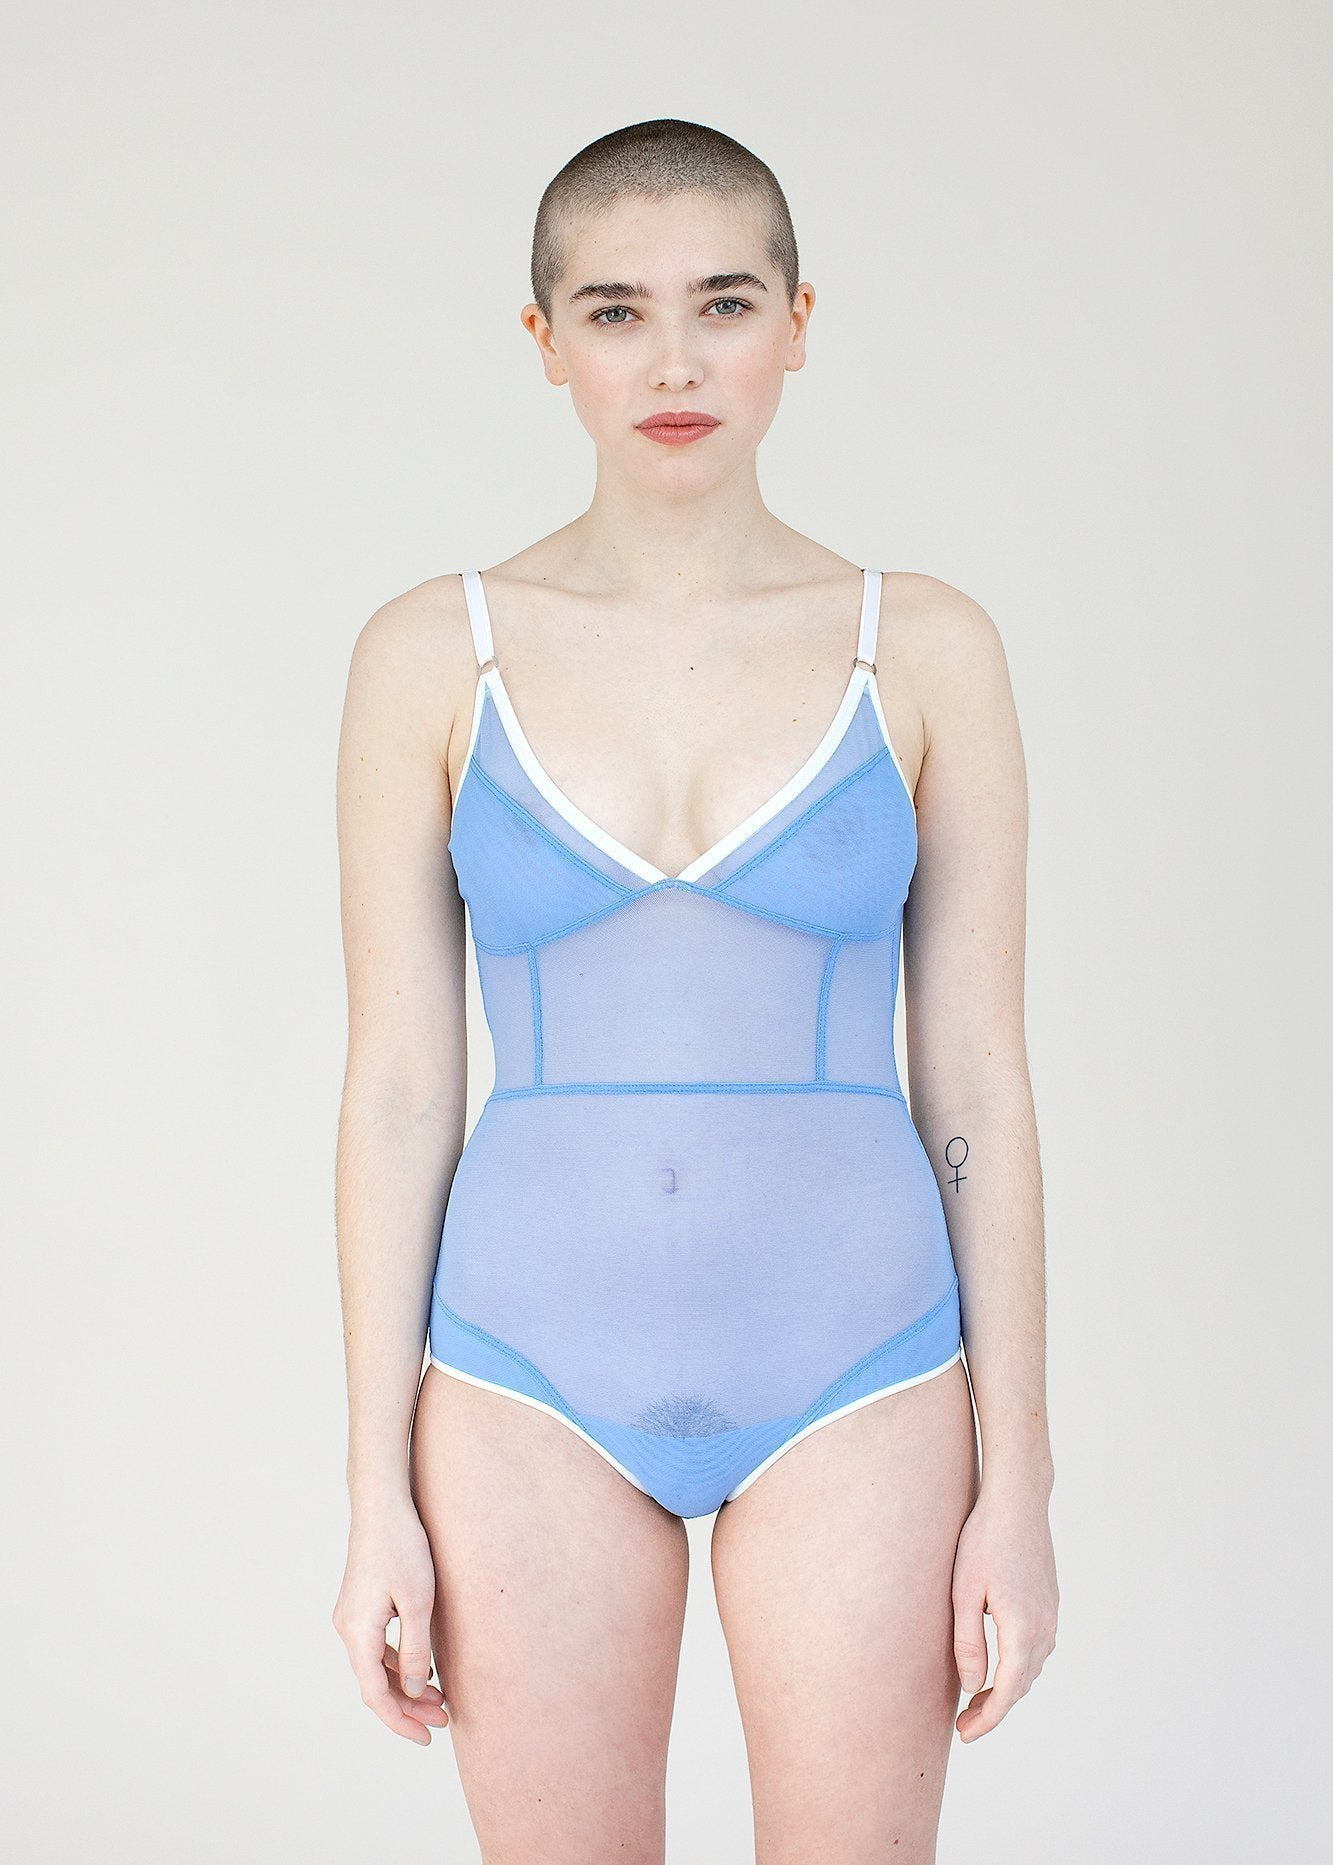 Opal Bodysuit - Blue Sheer Mesh Bodysuit with White Detailing